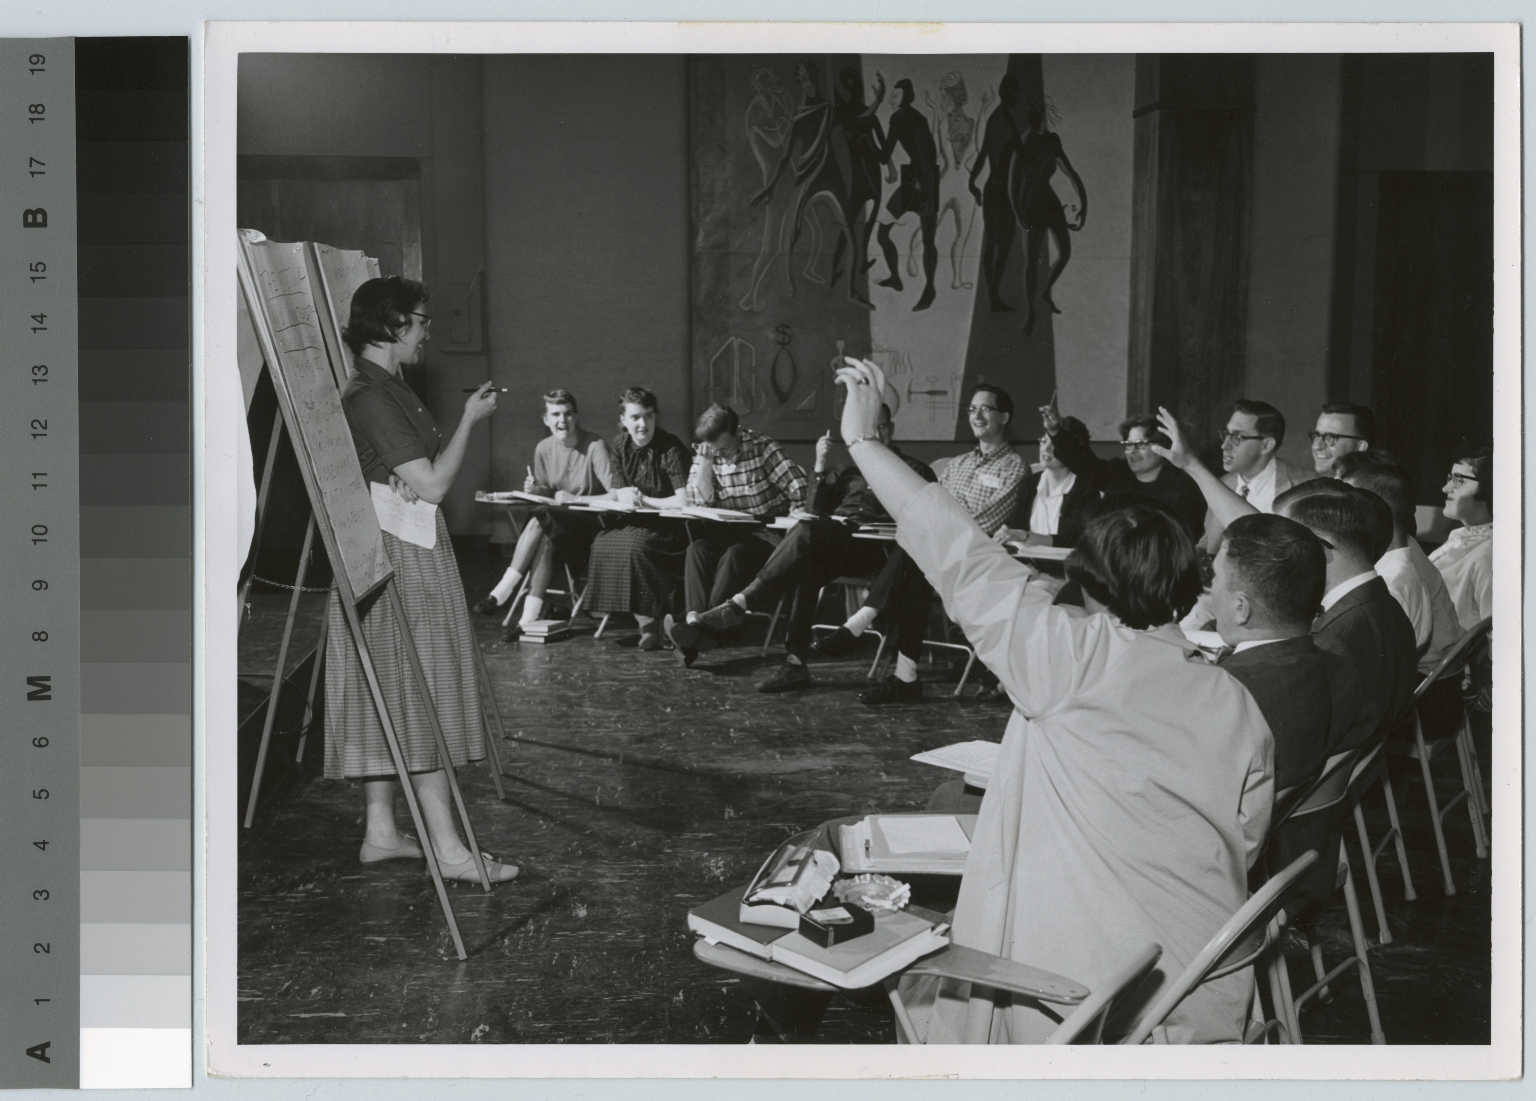 Public speaking class, Rochester Institute of Technology [1950-1959]